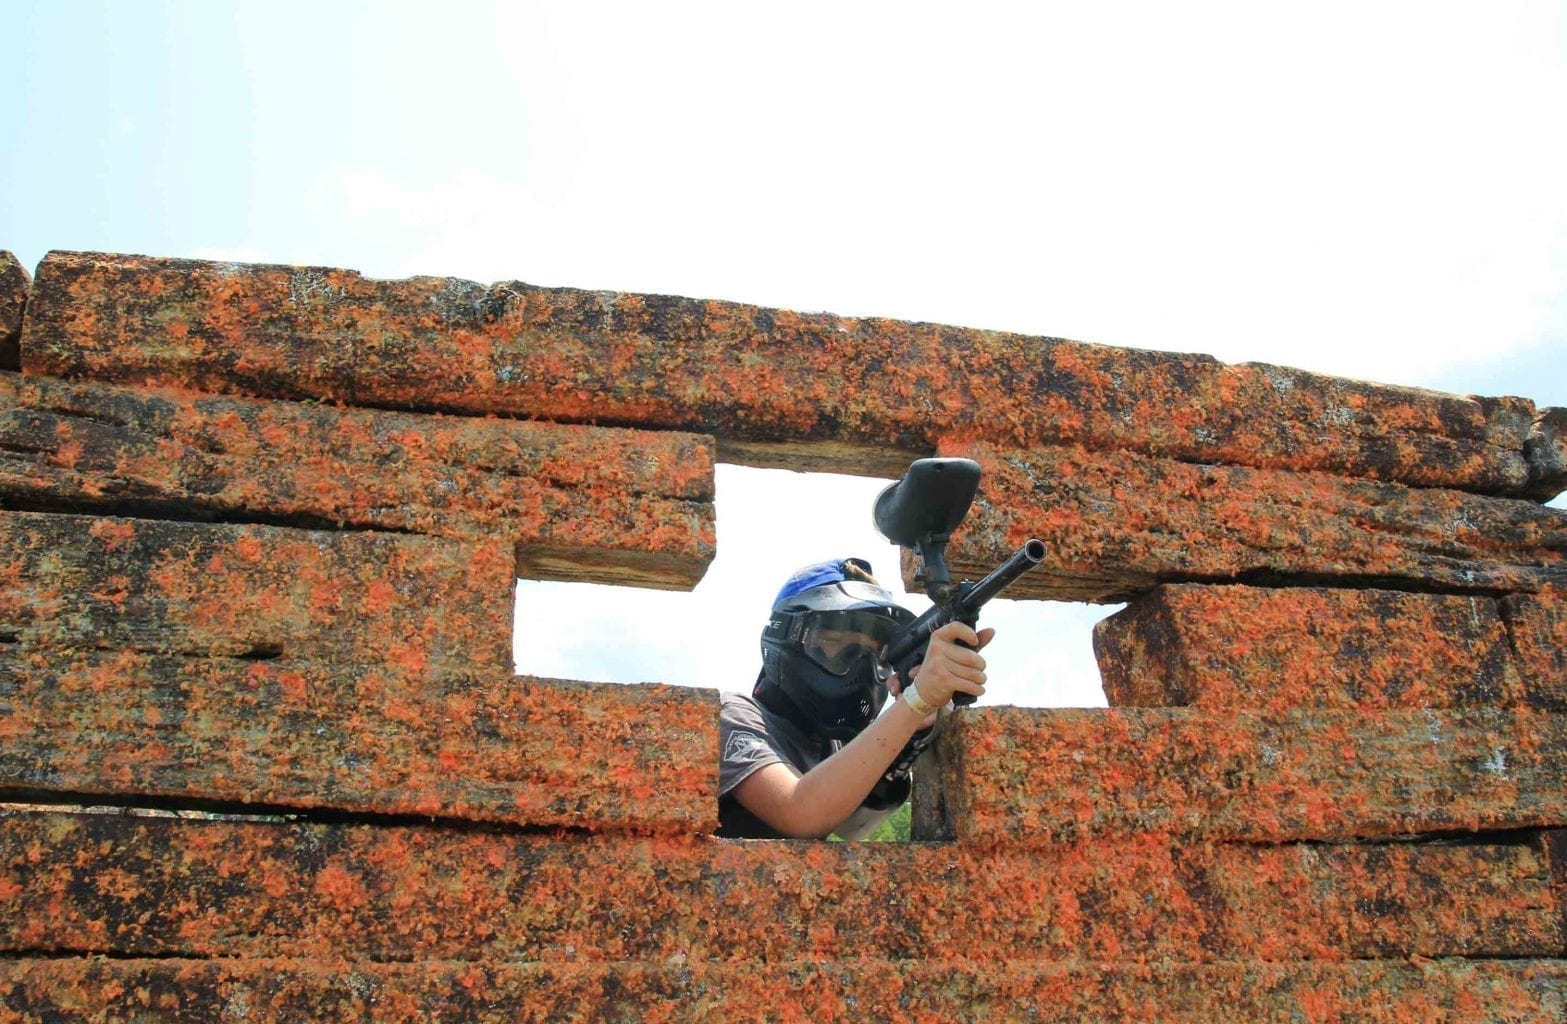 A teenager playing paintball peers over his gun through a combat barrier on the walkon paintball course at ACE Adventure Resort.